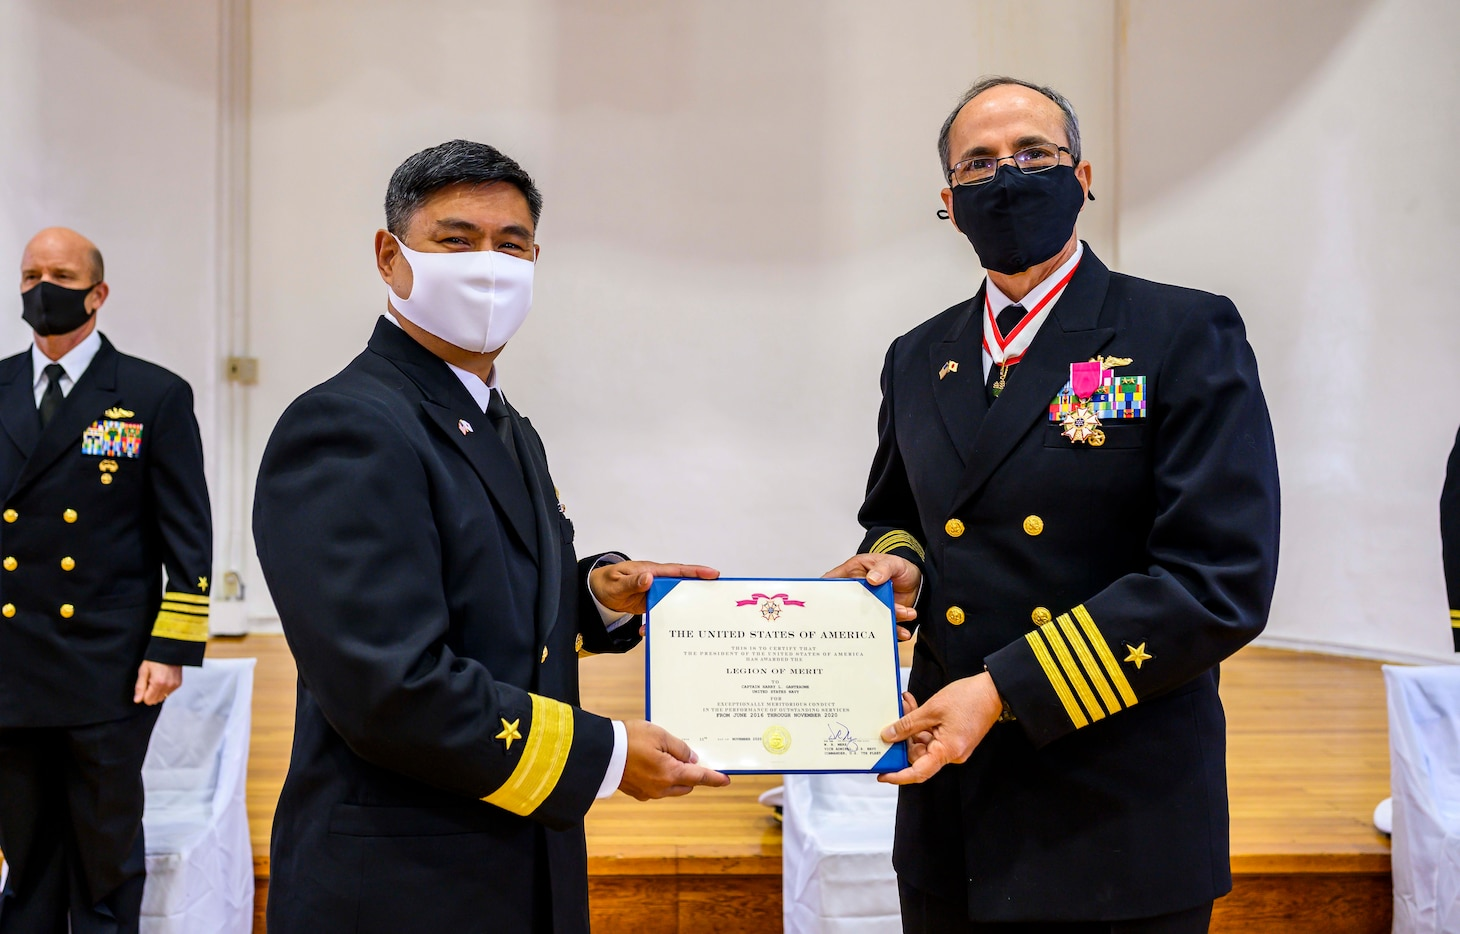 YOKOSUKA, Japan (Nov. 30, 2020) Rear Adm. Butch Dollaga, Commander, Submarine Group 7, awards Capt. Harry Ganteaume, the Group's former Chief of Staff, with the Legion of Merit during his retirement ceremony aboard Commander Fleet Activities Yokosuka. (U.S. Navy photo by Mass Communication Specialist 2nd Class Taylor DiMartino)